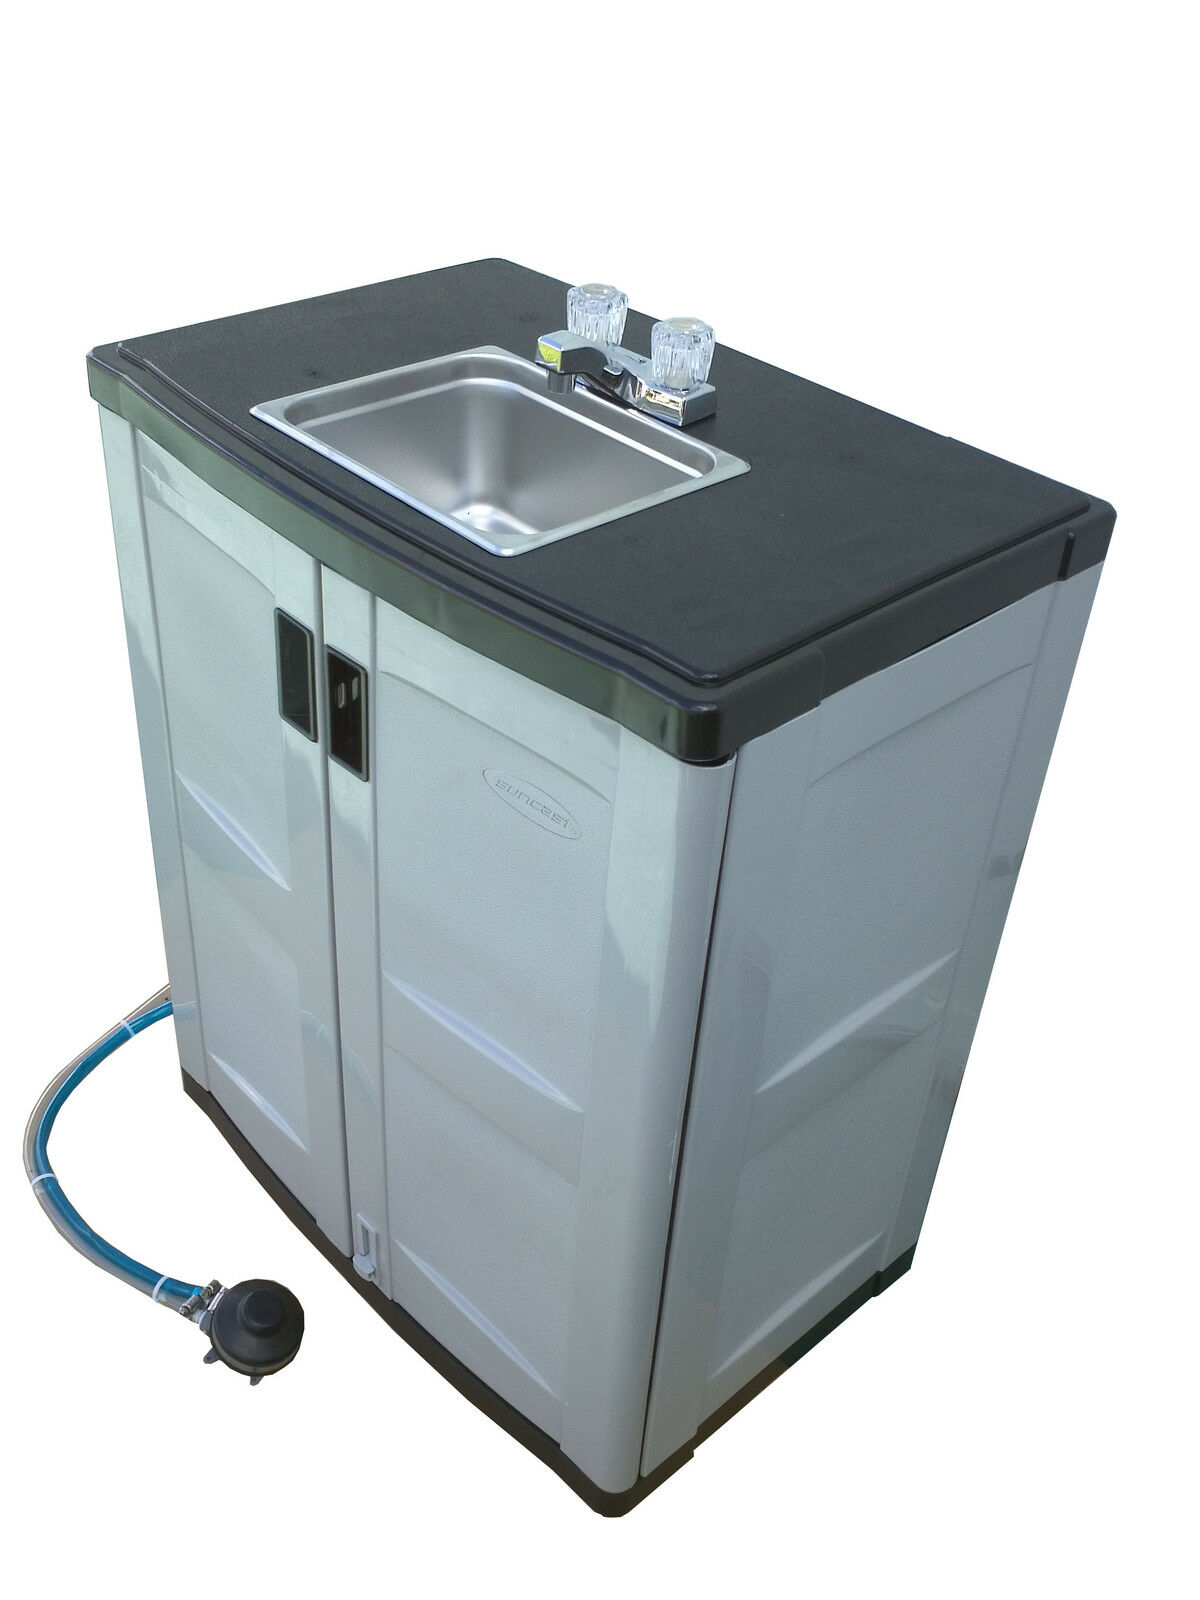 Plastic Portable Sink : Self contained Portable Handwash Sink with Warm Water ? $649.00 1 of ...